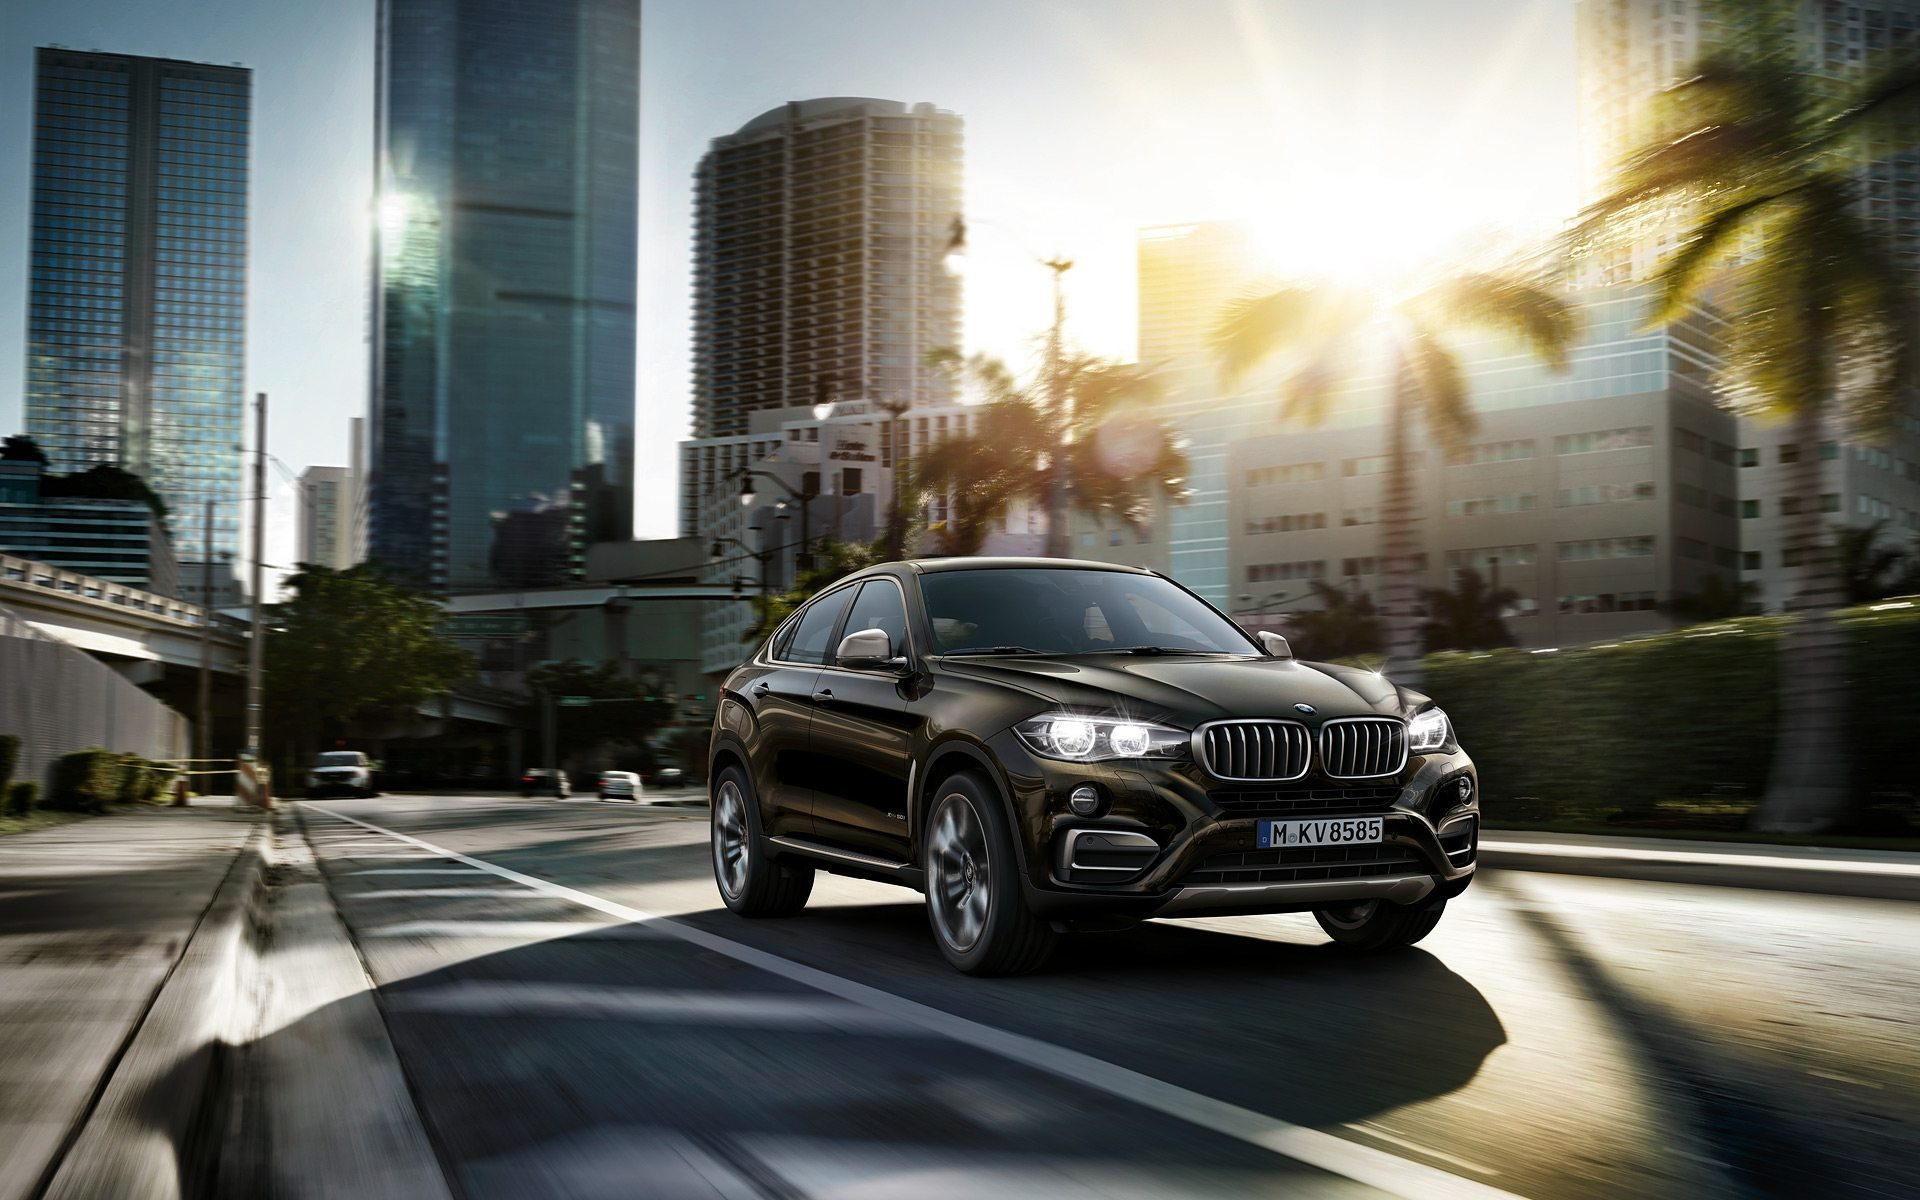 2018 Bmw X6 Xdrive50i Price In Uae Specs Amp Review In